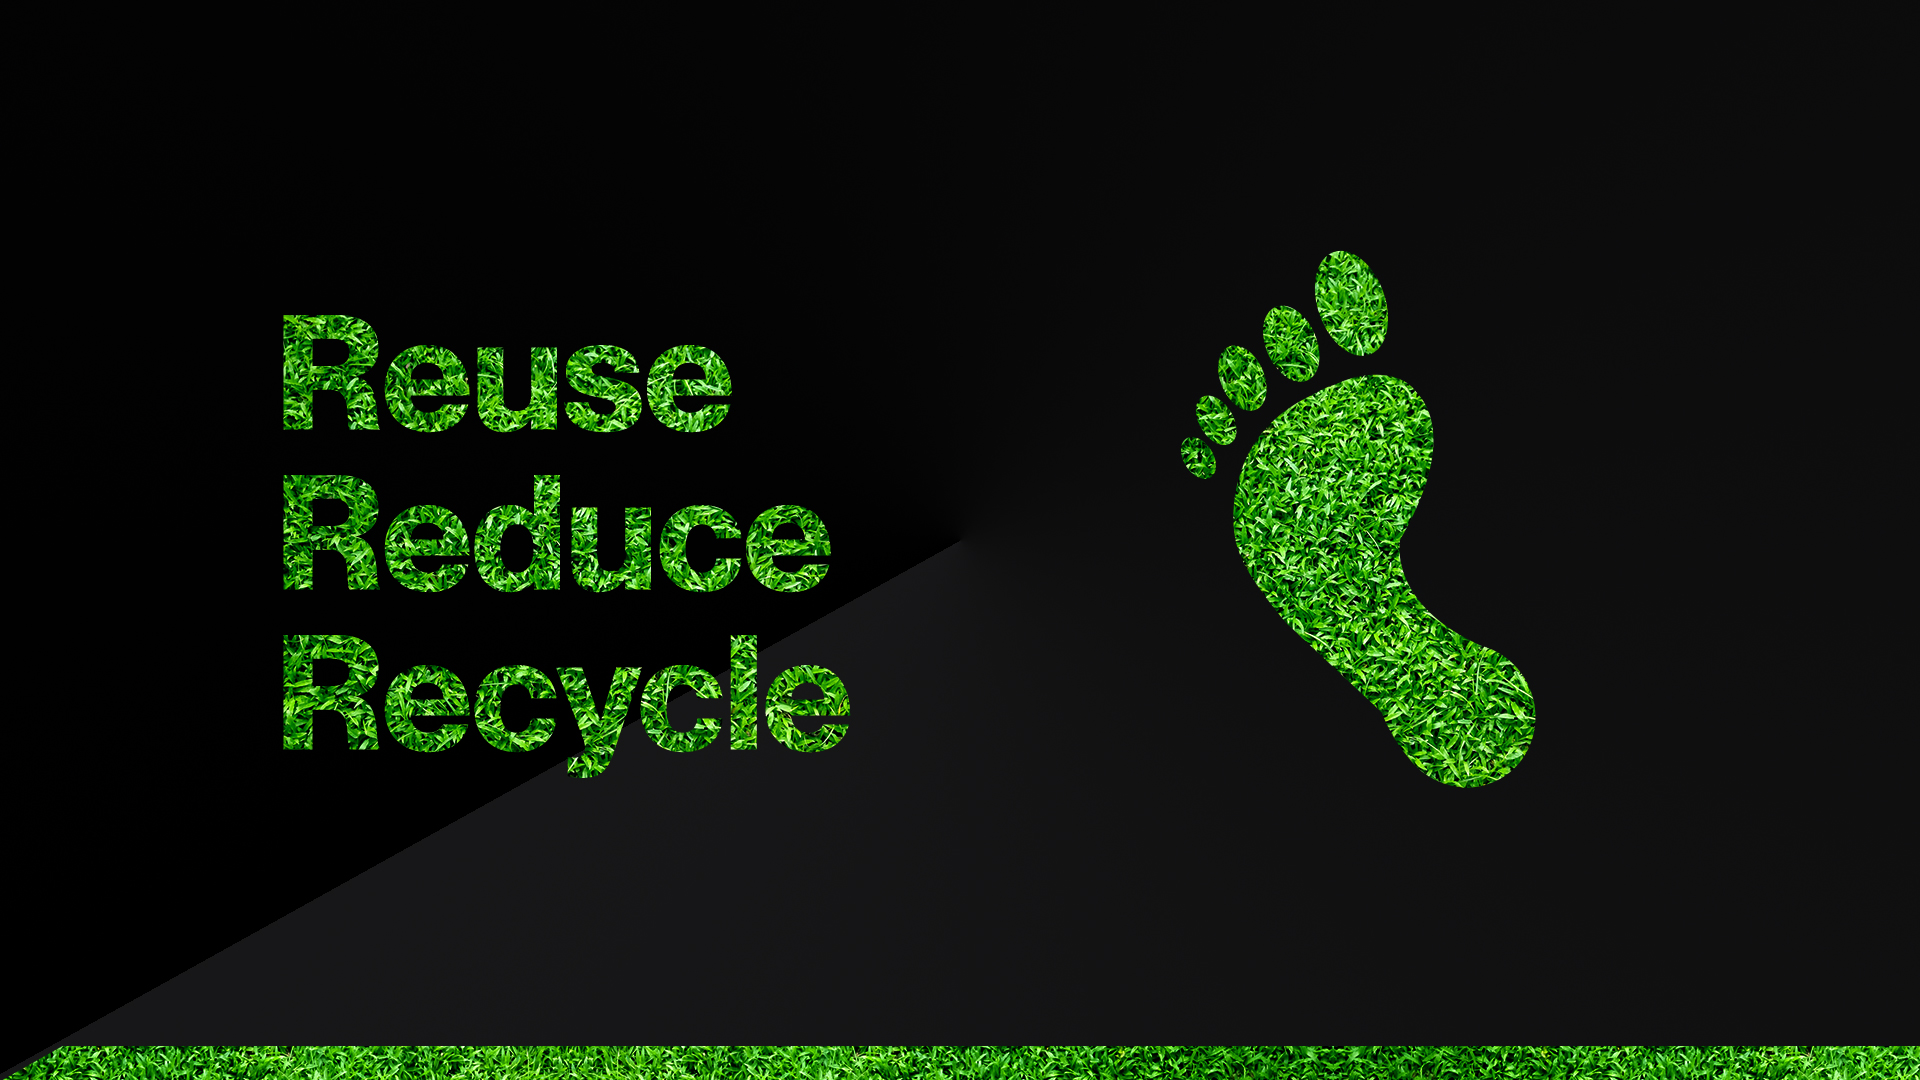 Reducing our carbon footprint and making FinTech eco-friendly